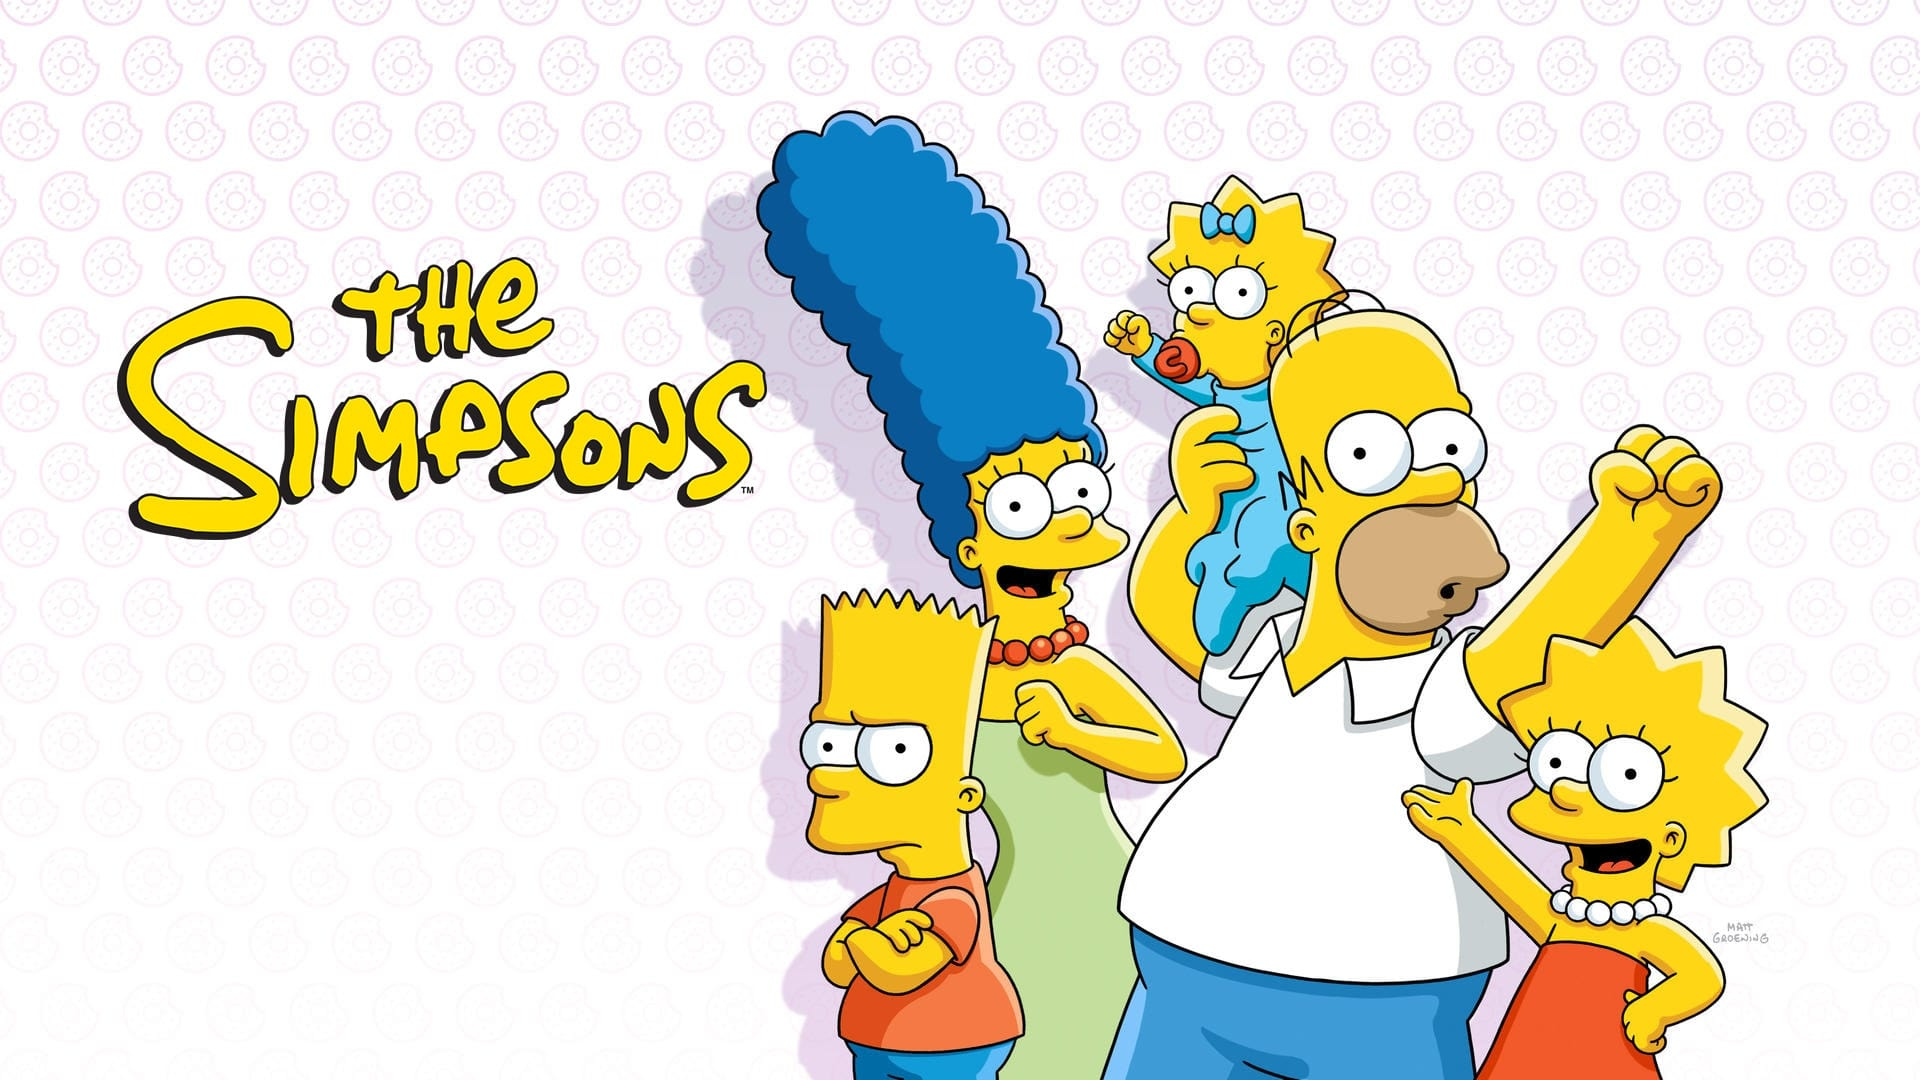 The Simpsons - Season 32